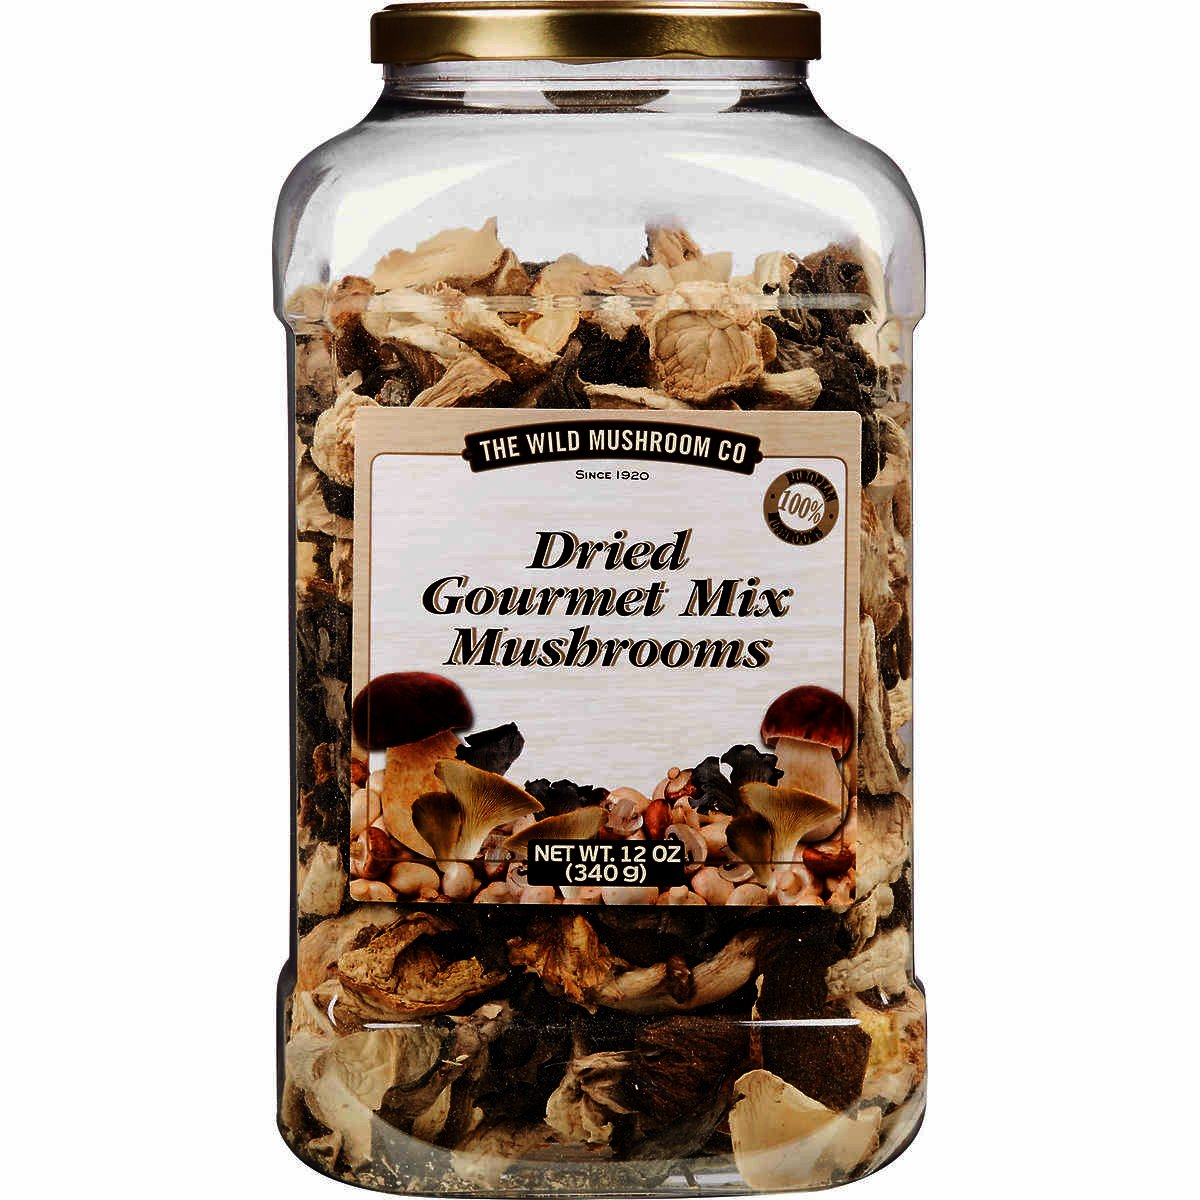 The Wild Mushroom Co. Dried Gourmet Mix European Mushrooms 12 Ounces (340g)